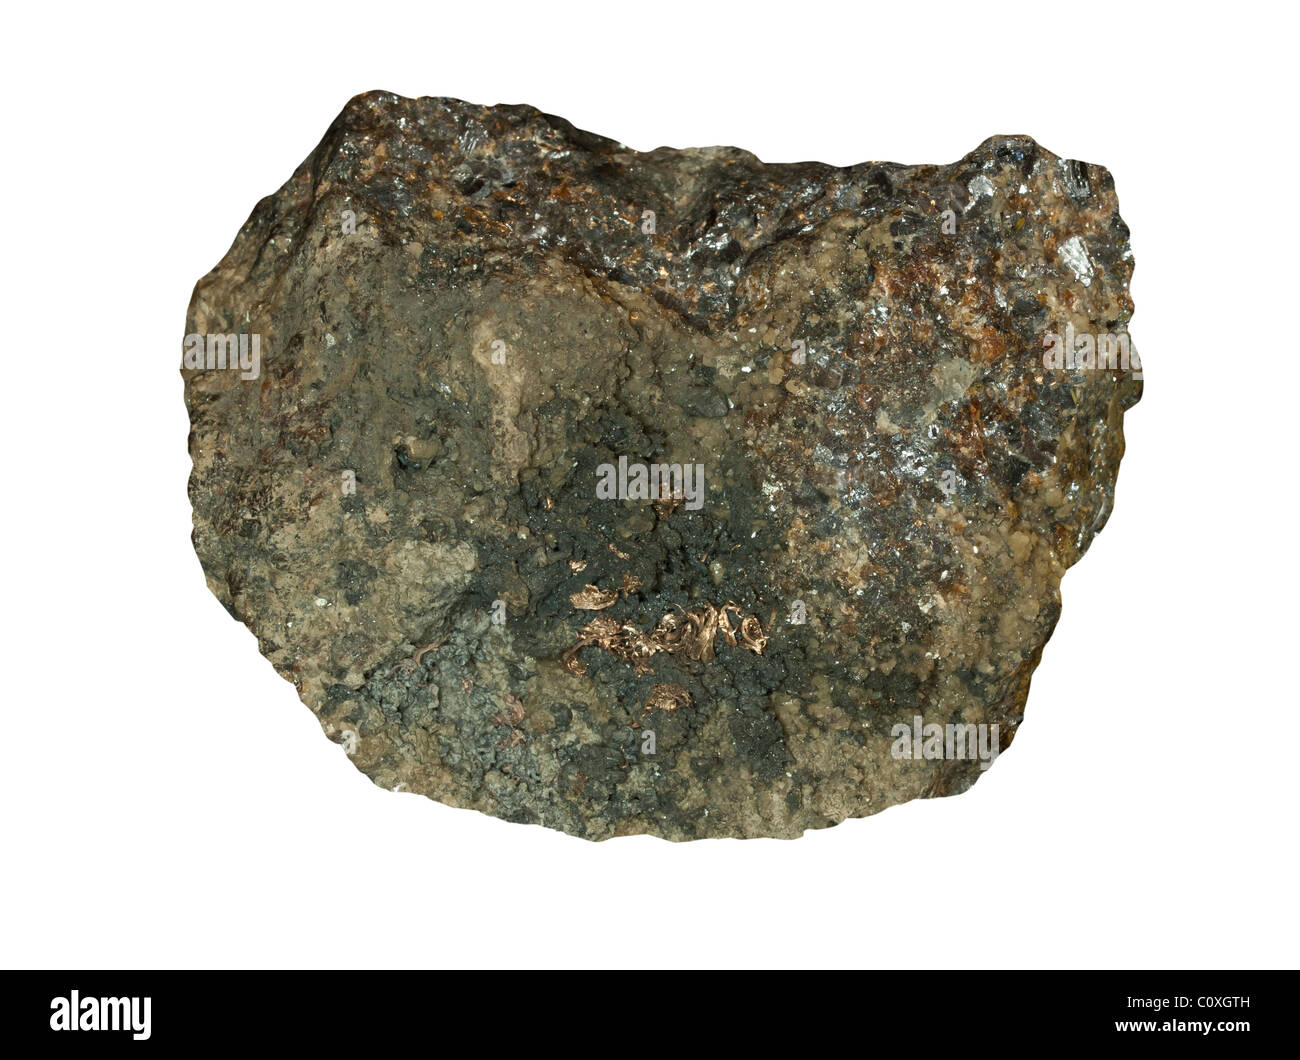 Native silver on Galena and Sphalerite minerals - Stock Image